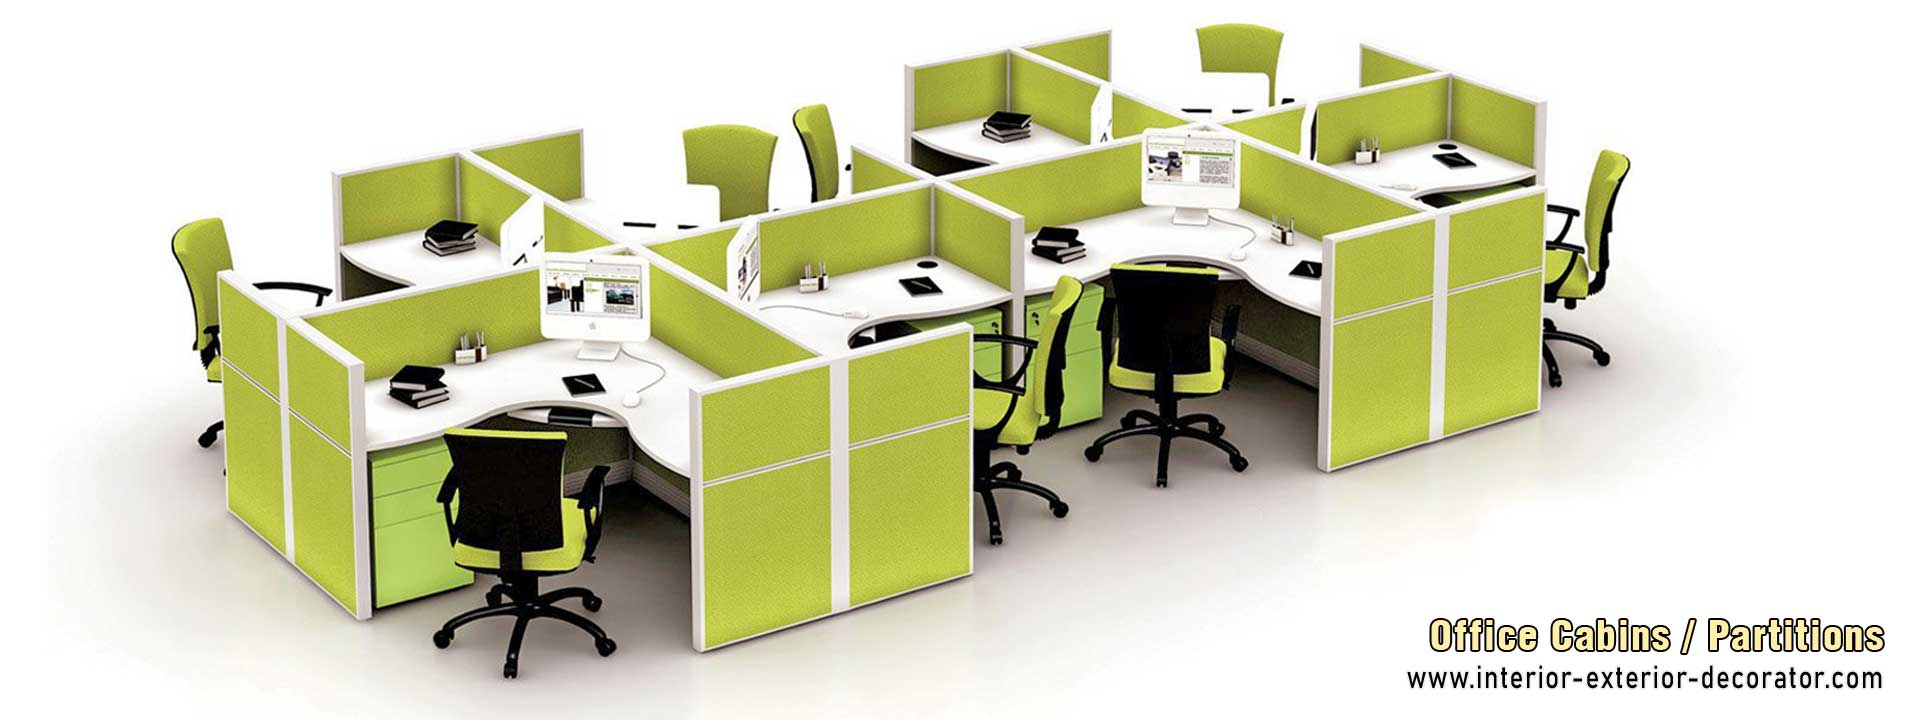 office cabins office partitions office furniture office interirs manufacturers in ludhiana punjab india